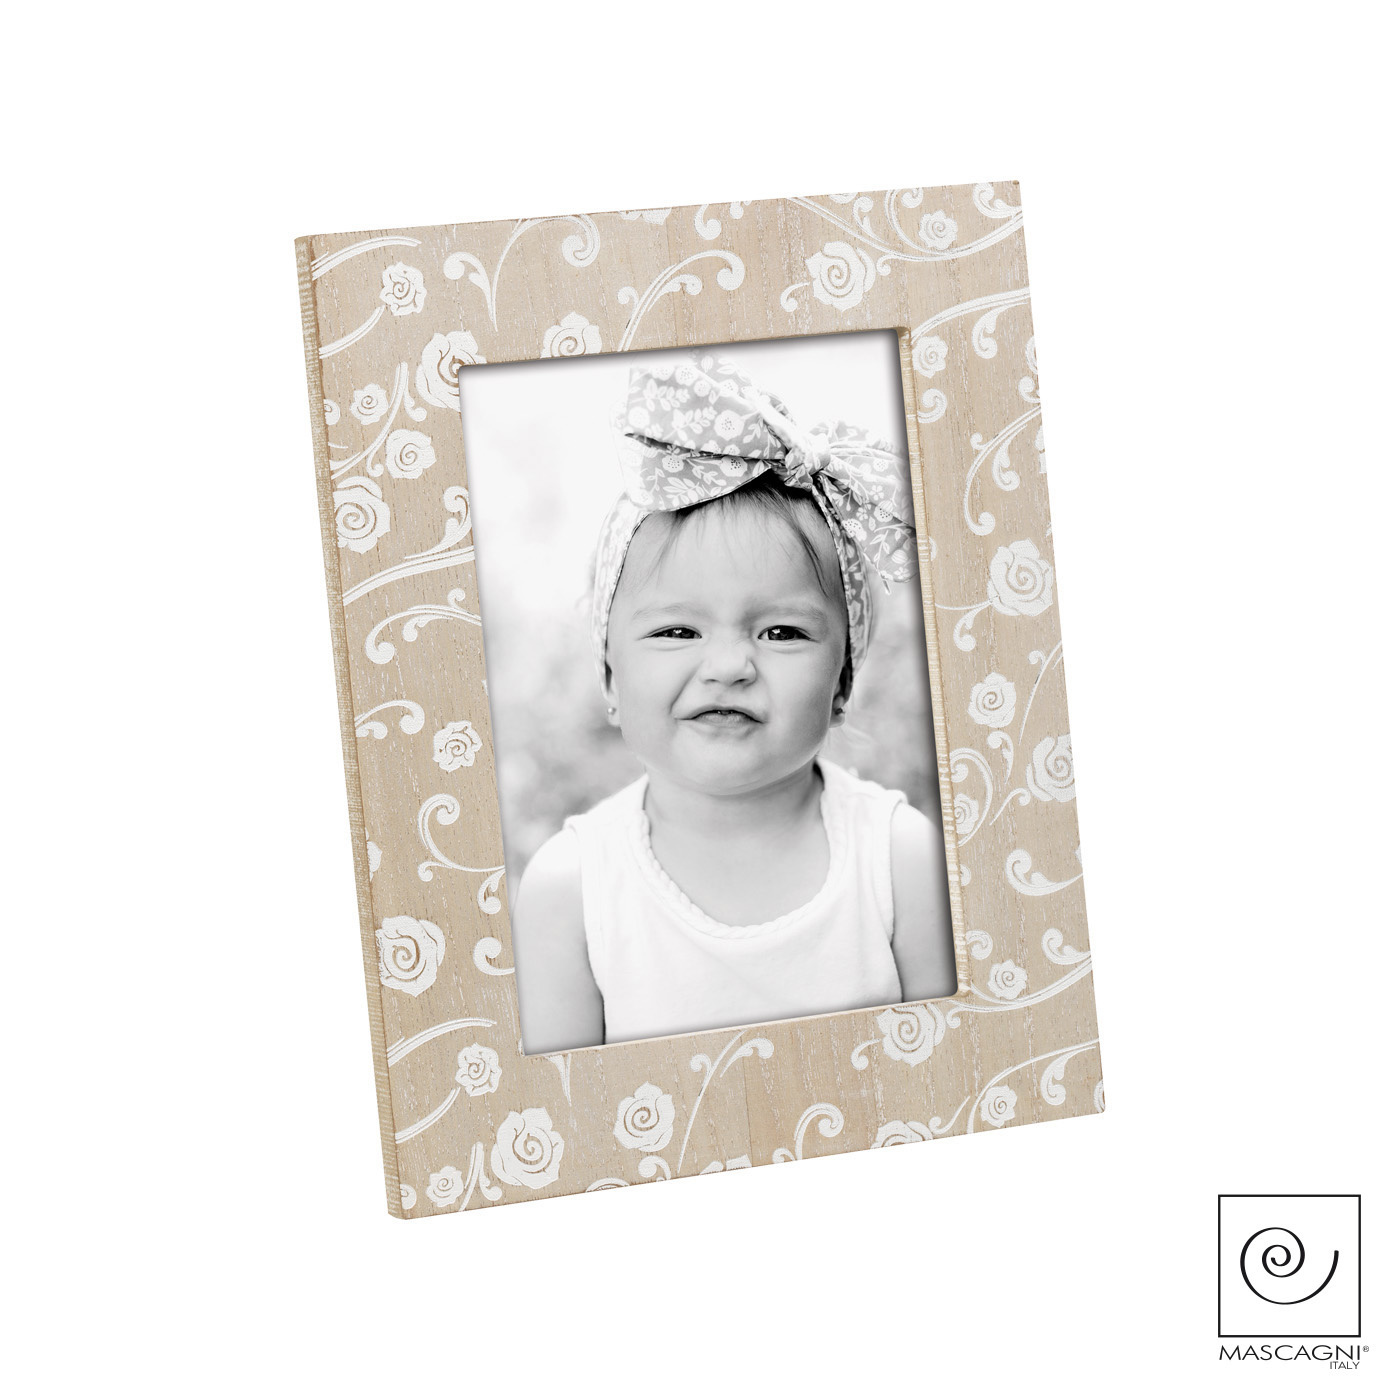 Art Mascagni A993 PHOTO FRAME 13X18 - COL. NATURAL